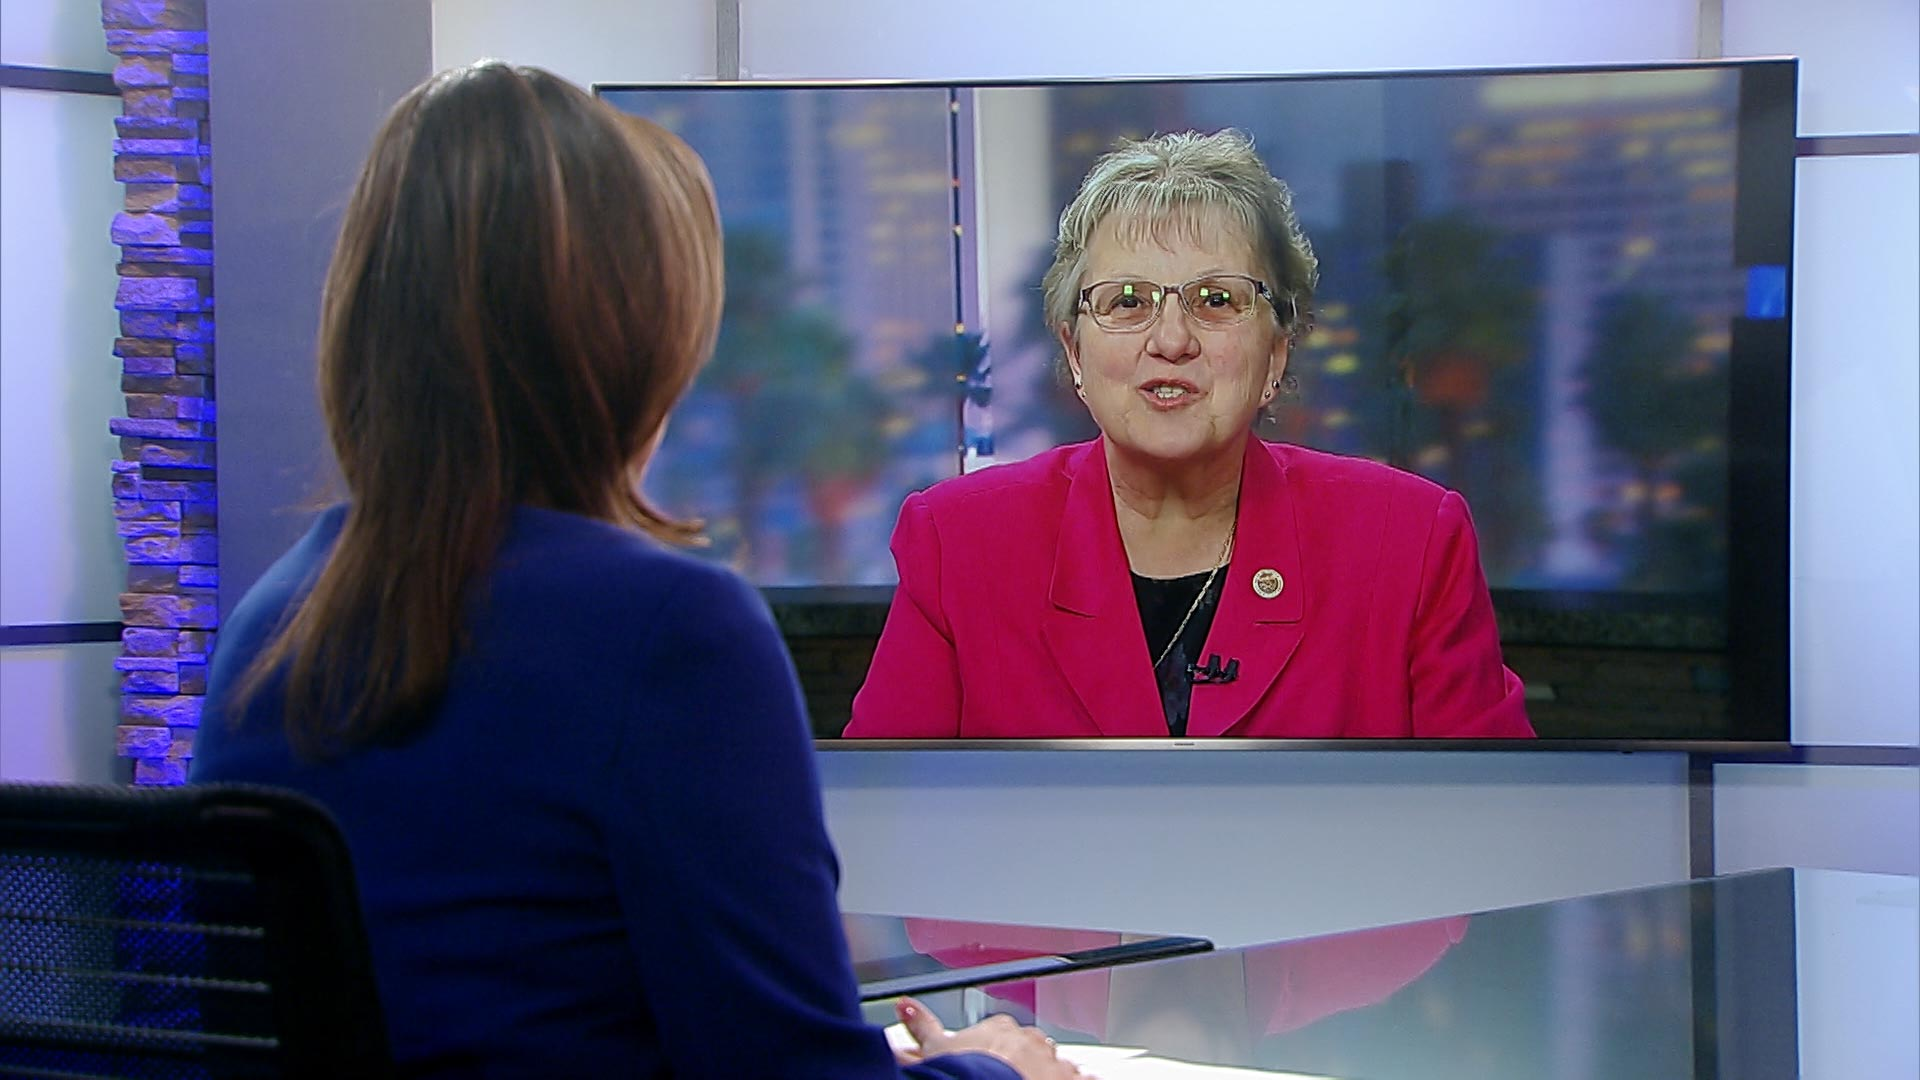 Arizona Superintendent of Public Instruction Diane Douglas interviewed by Arizona 360 in March 2018.